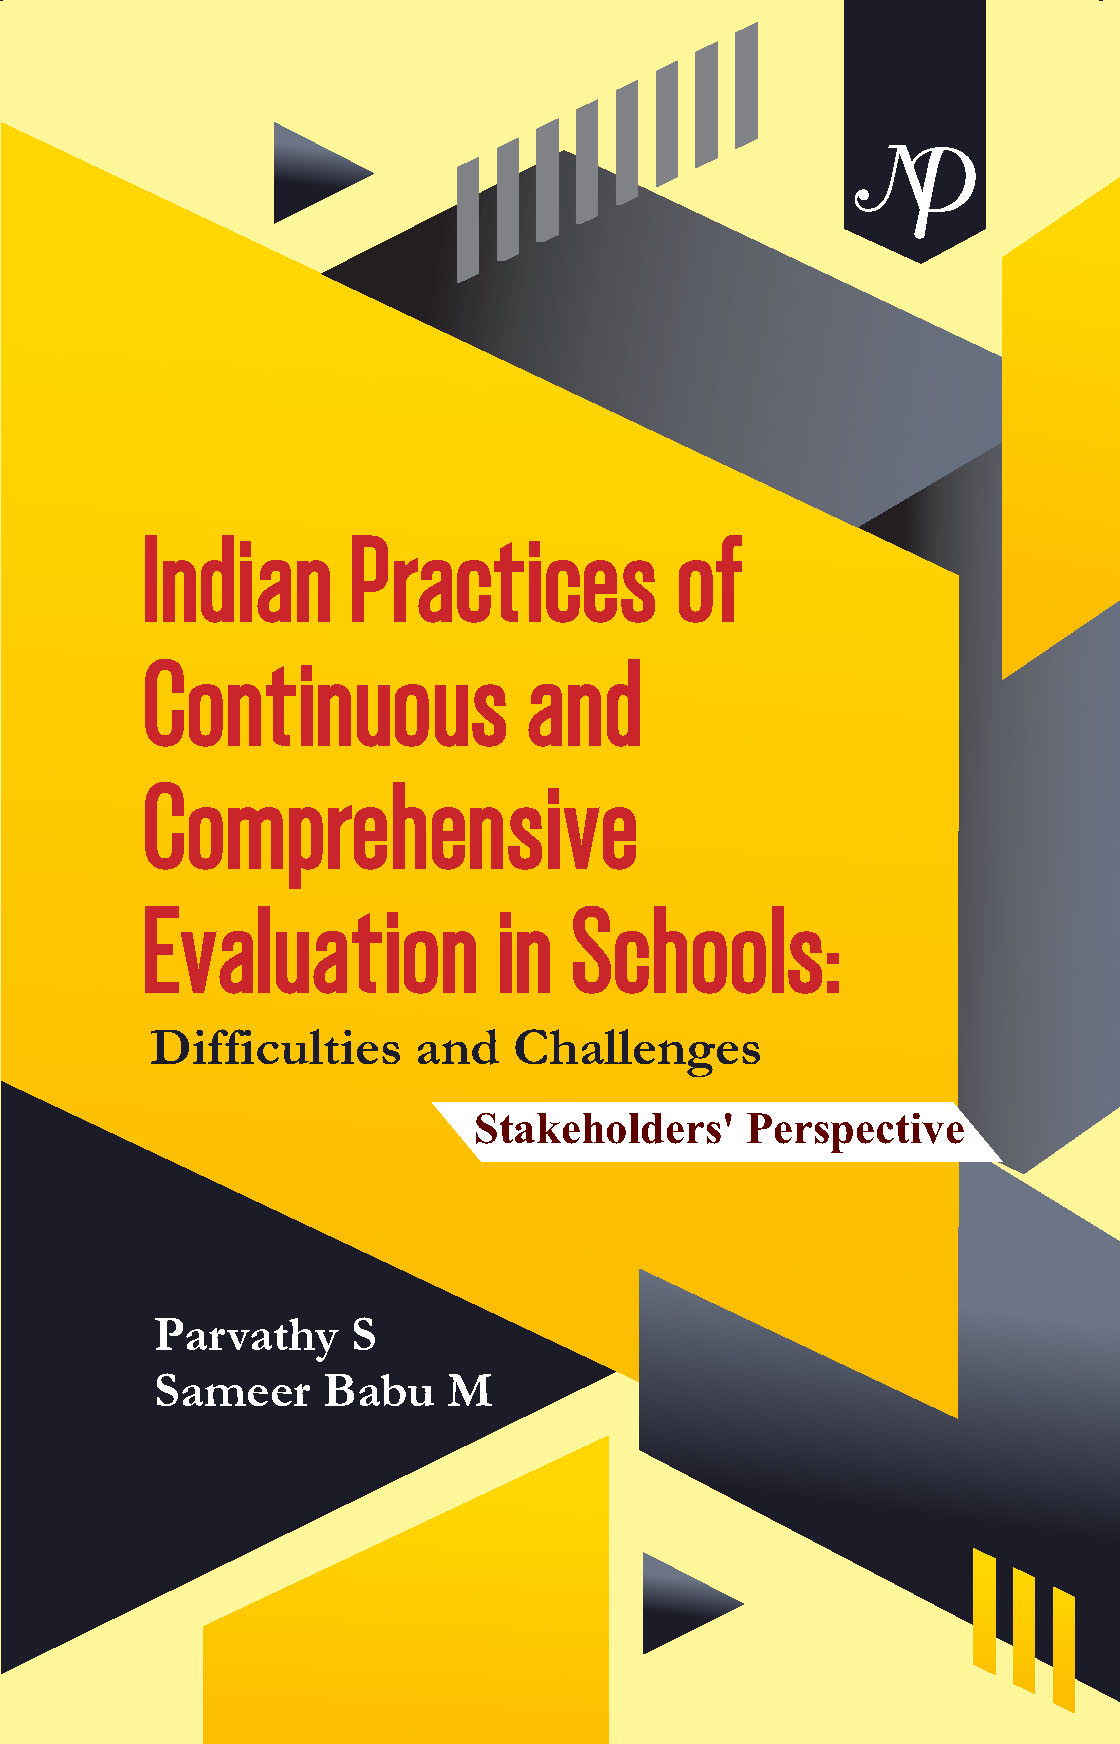 Indian Practices of Continuous and Comprehensive Evaluation in Schools: Difficulties and Challenges Stakeholders' Perspective